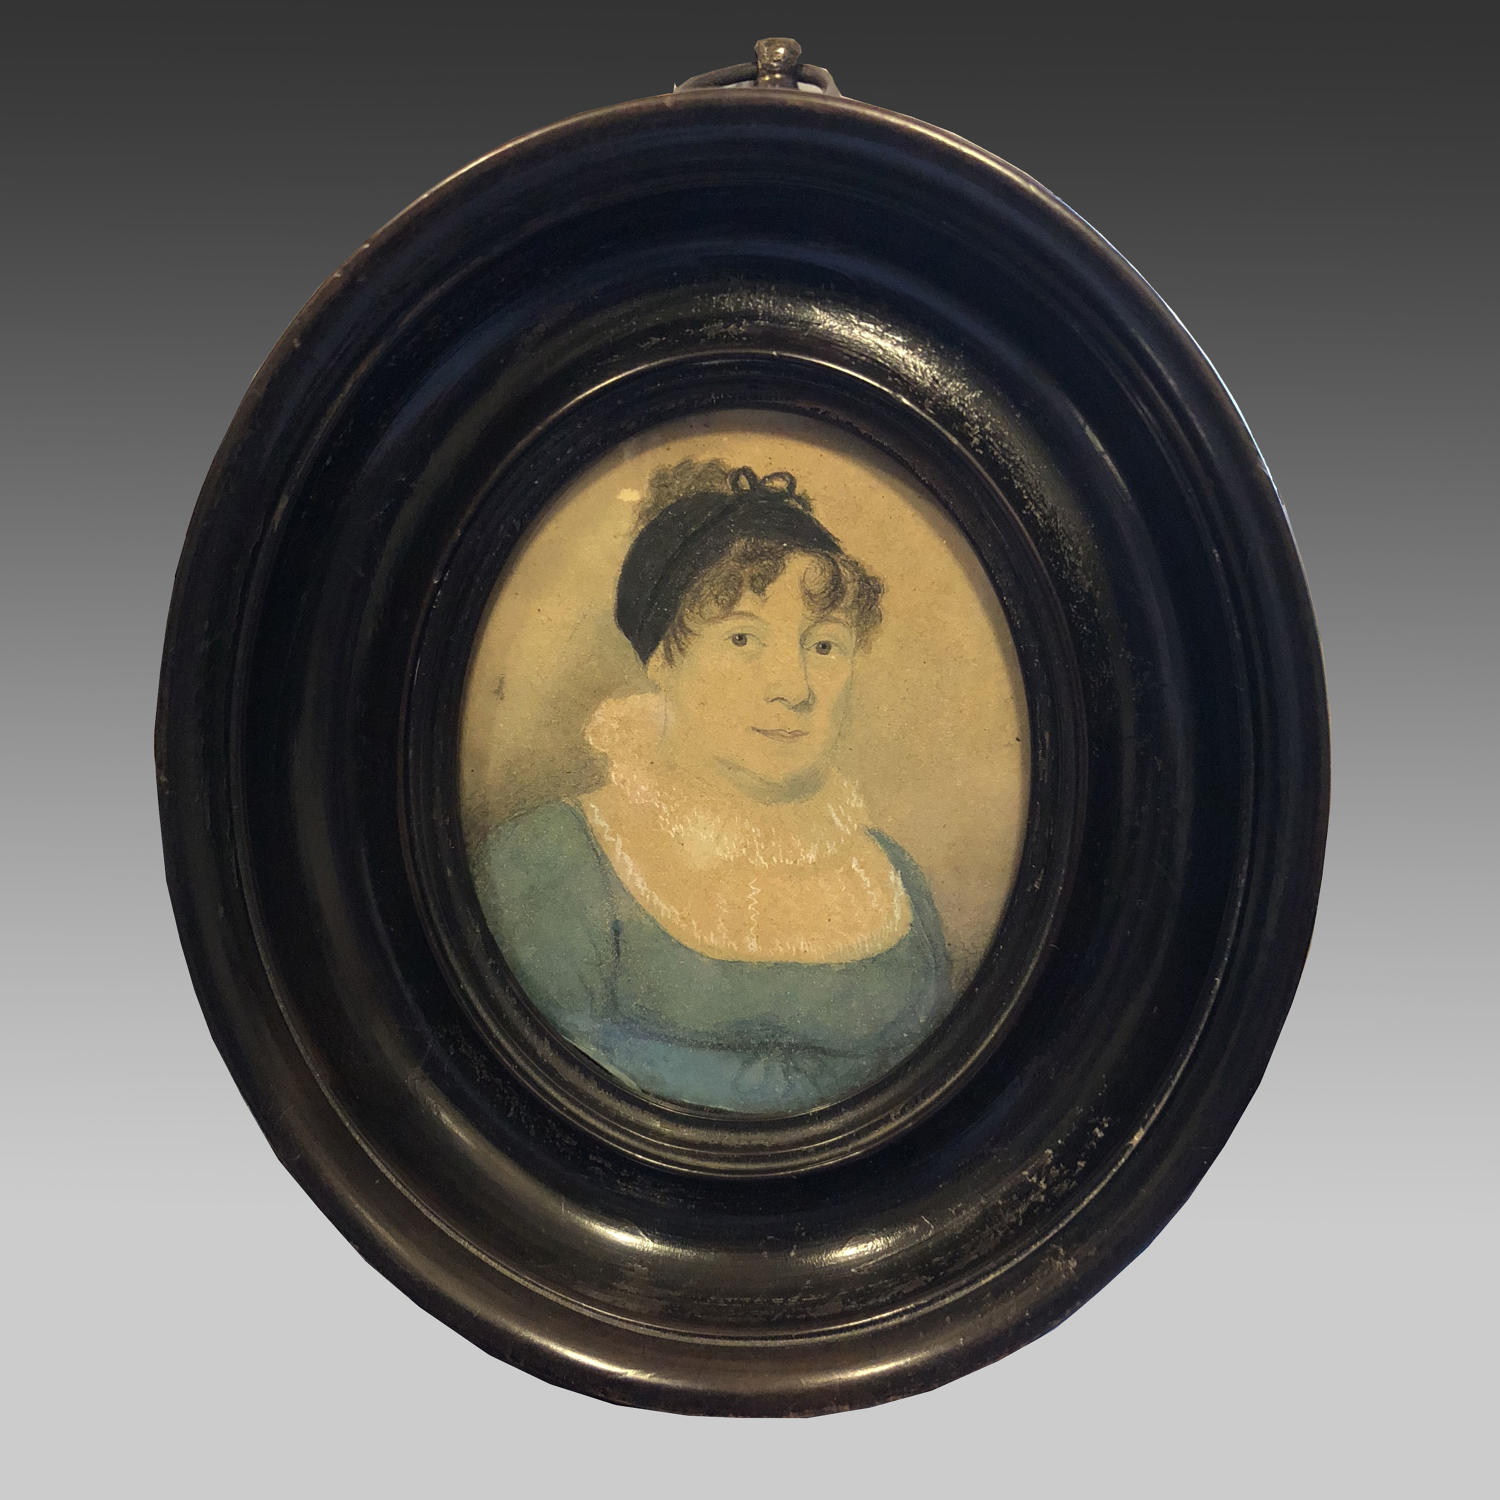 Regency oval miniature of a lady